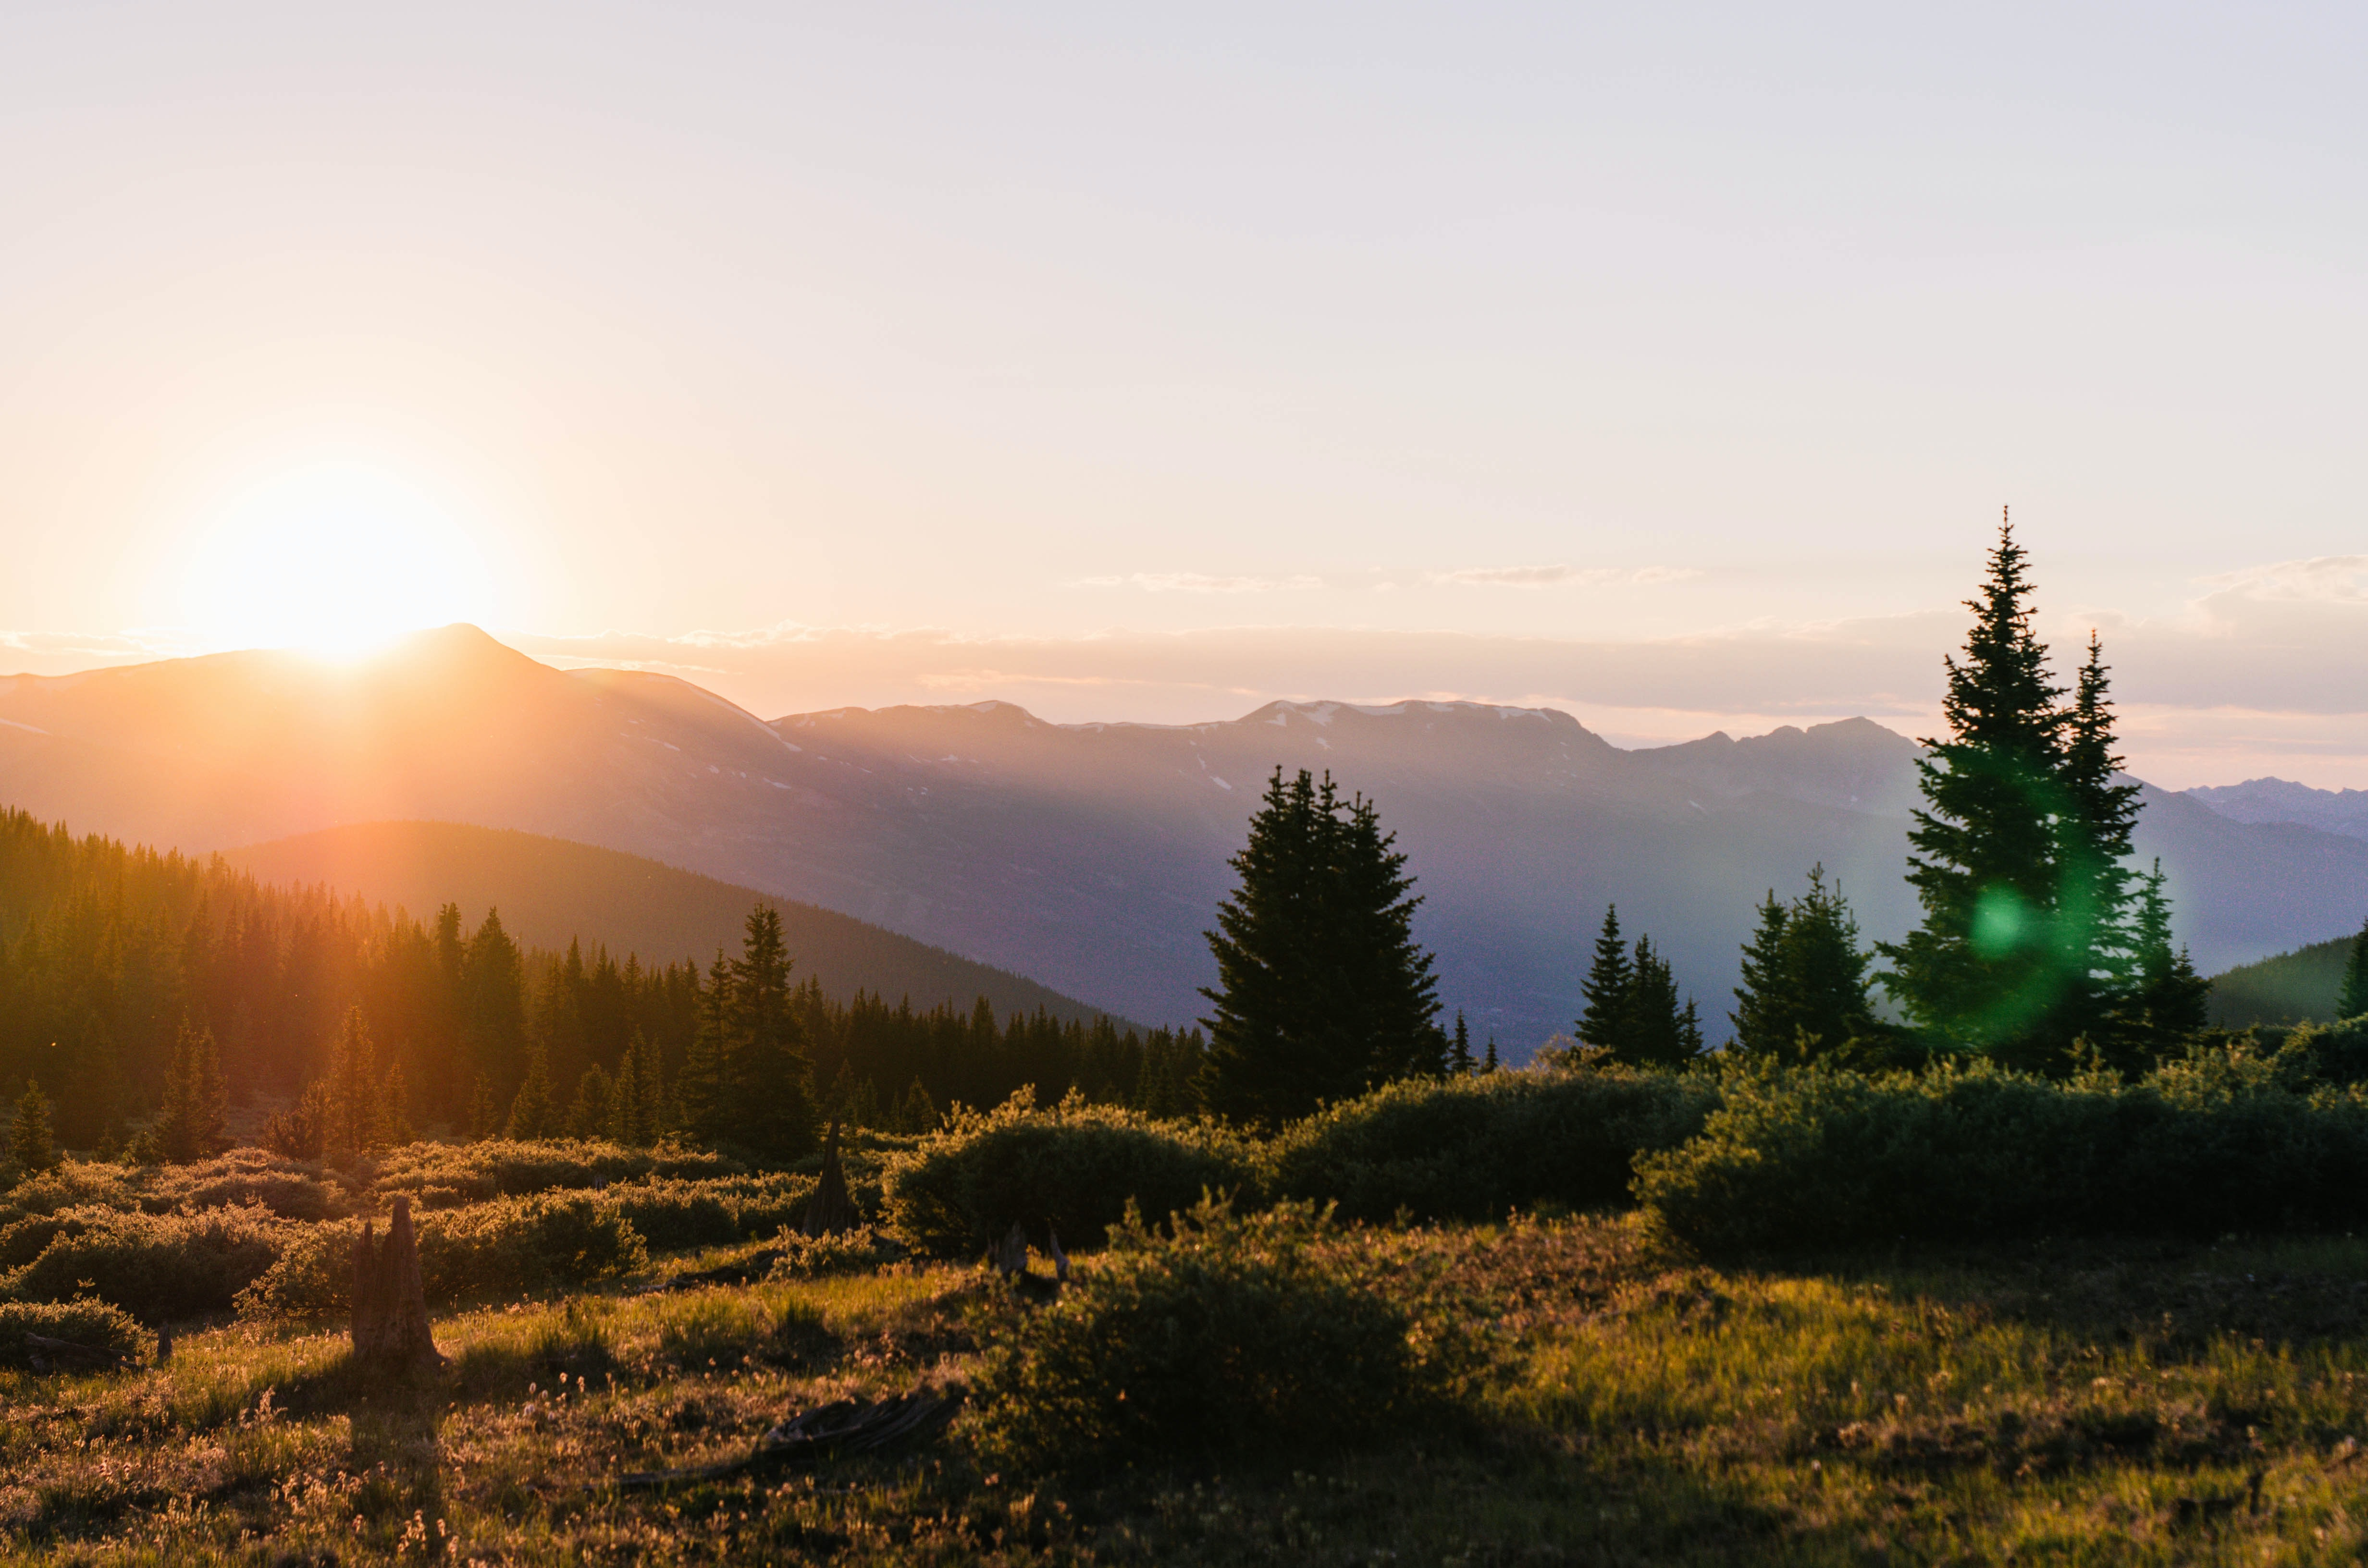 beautiful landscape sunset scene with trees and mountains